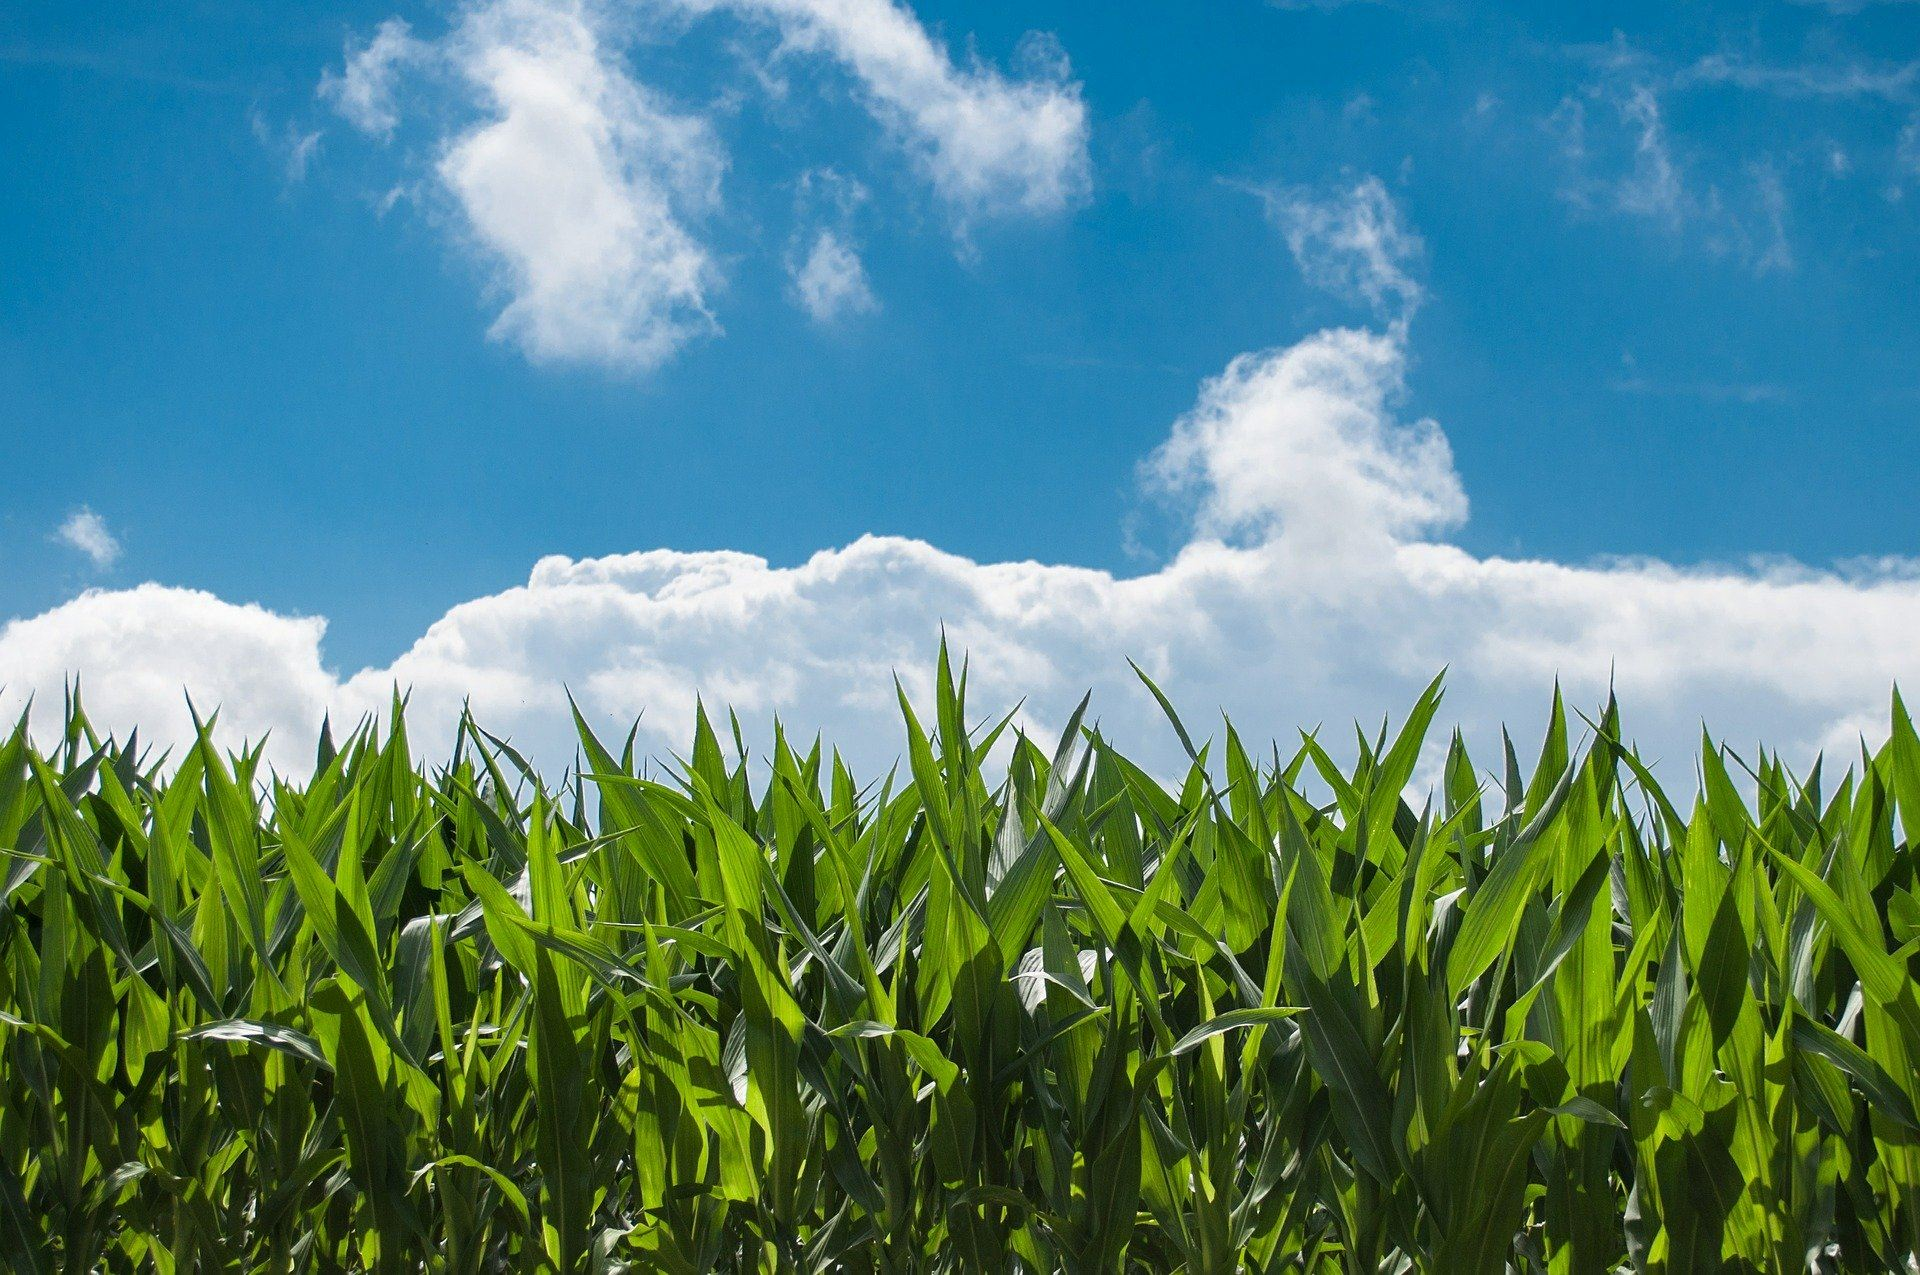 Cornfield in front of blue sky